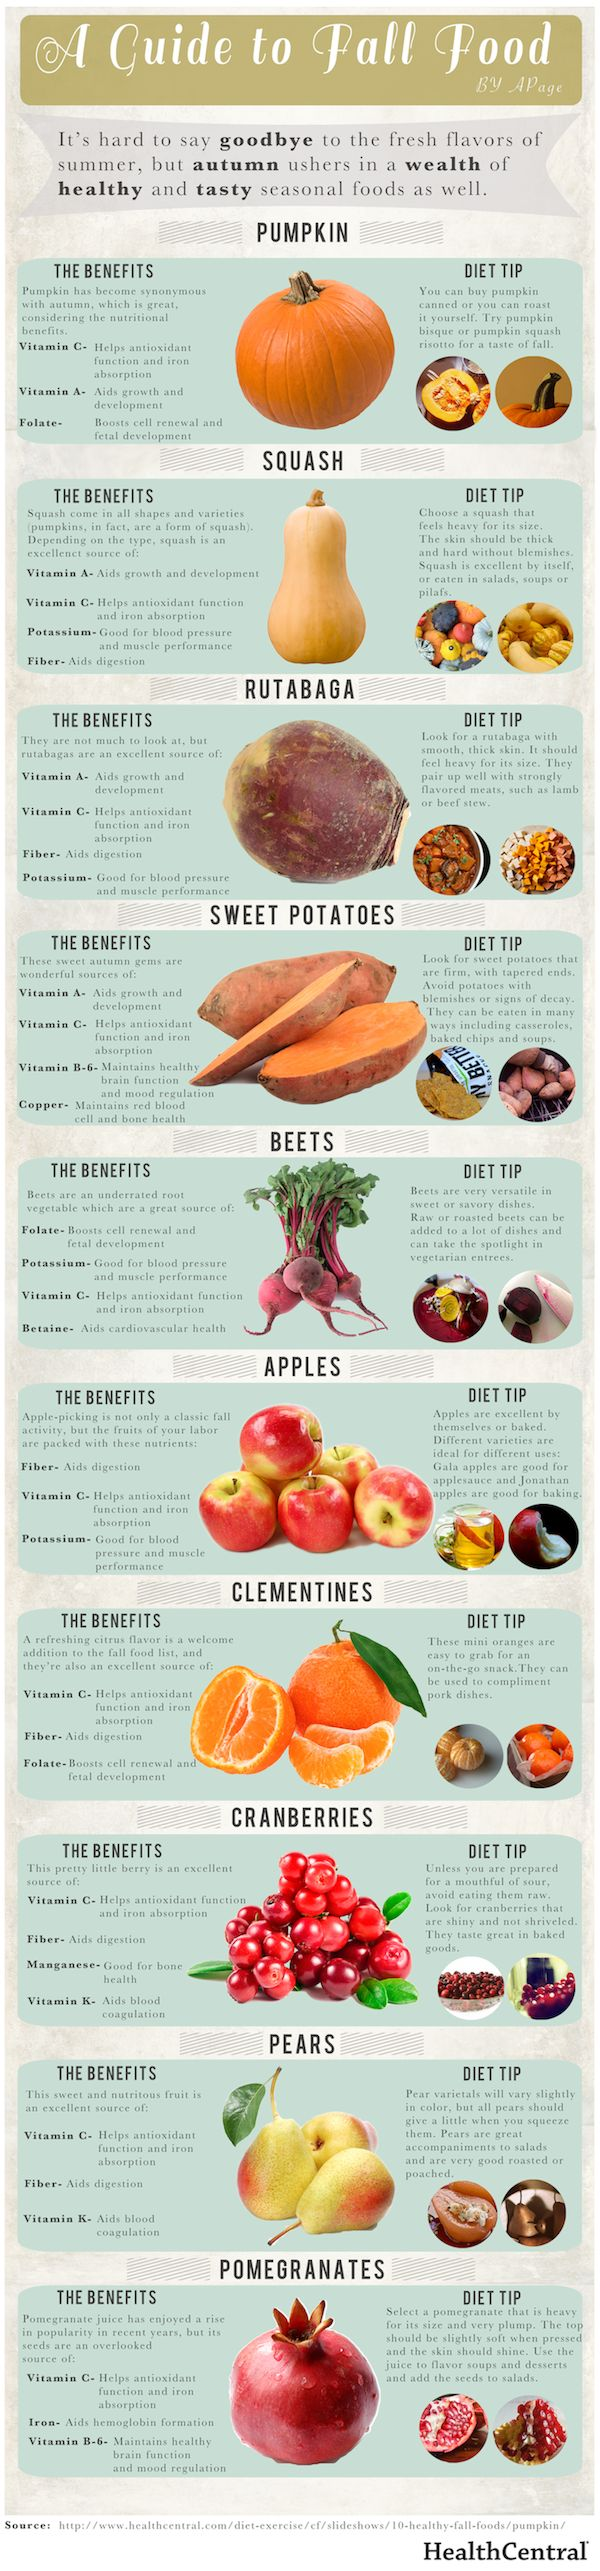 A Guide to Fall Food | NutriLiving | A Guide to Fall Food |  Published by NutriBullet | The cooler weather, the falling leaves… it must me Fall! While we'll miss the exciting flavors of summer, we're stoked to see autumn produce hitting our local groceries. Squashes and tubers and even pomegranates – and with all their nutrients, to boot!   Take a look at this list of fall favorites along with their incredible health benefits